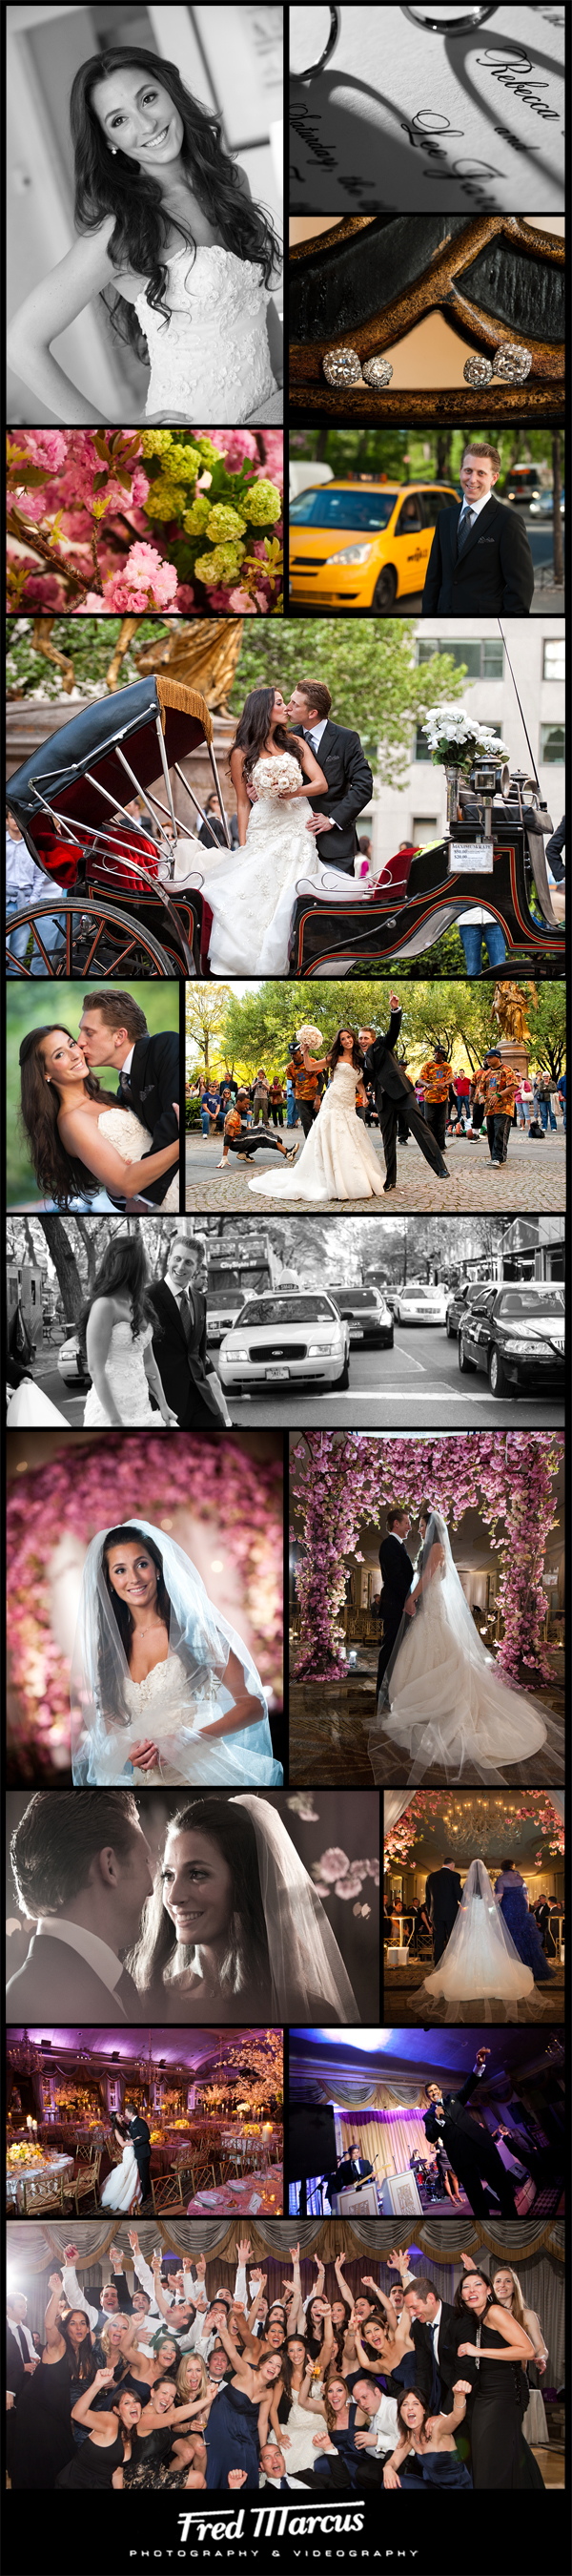 Wedding Photography at The Pierre Hotel – NYC – Rebecca and Lee